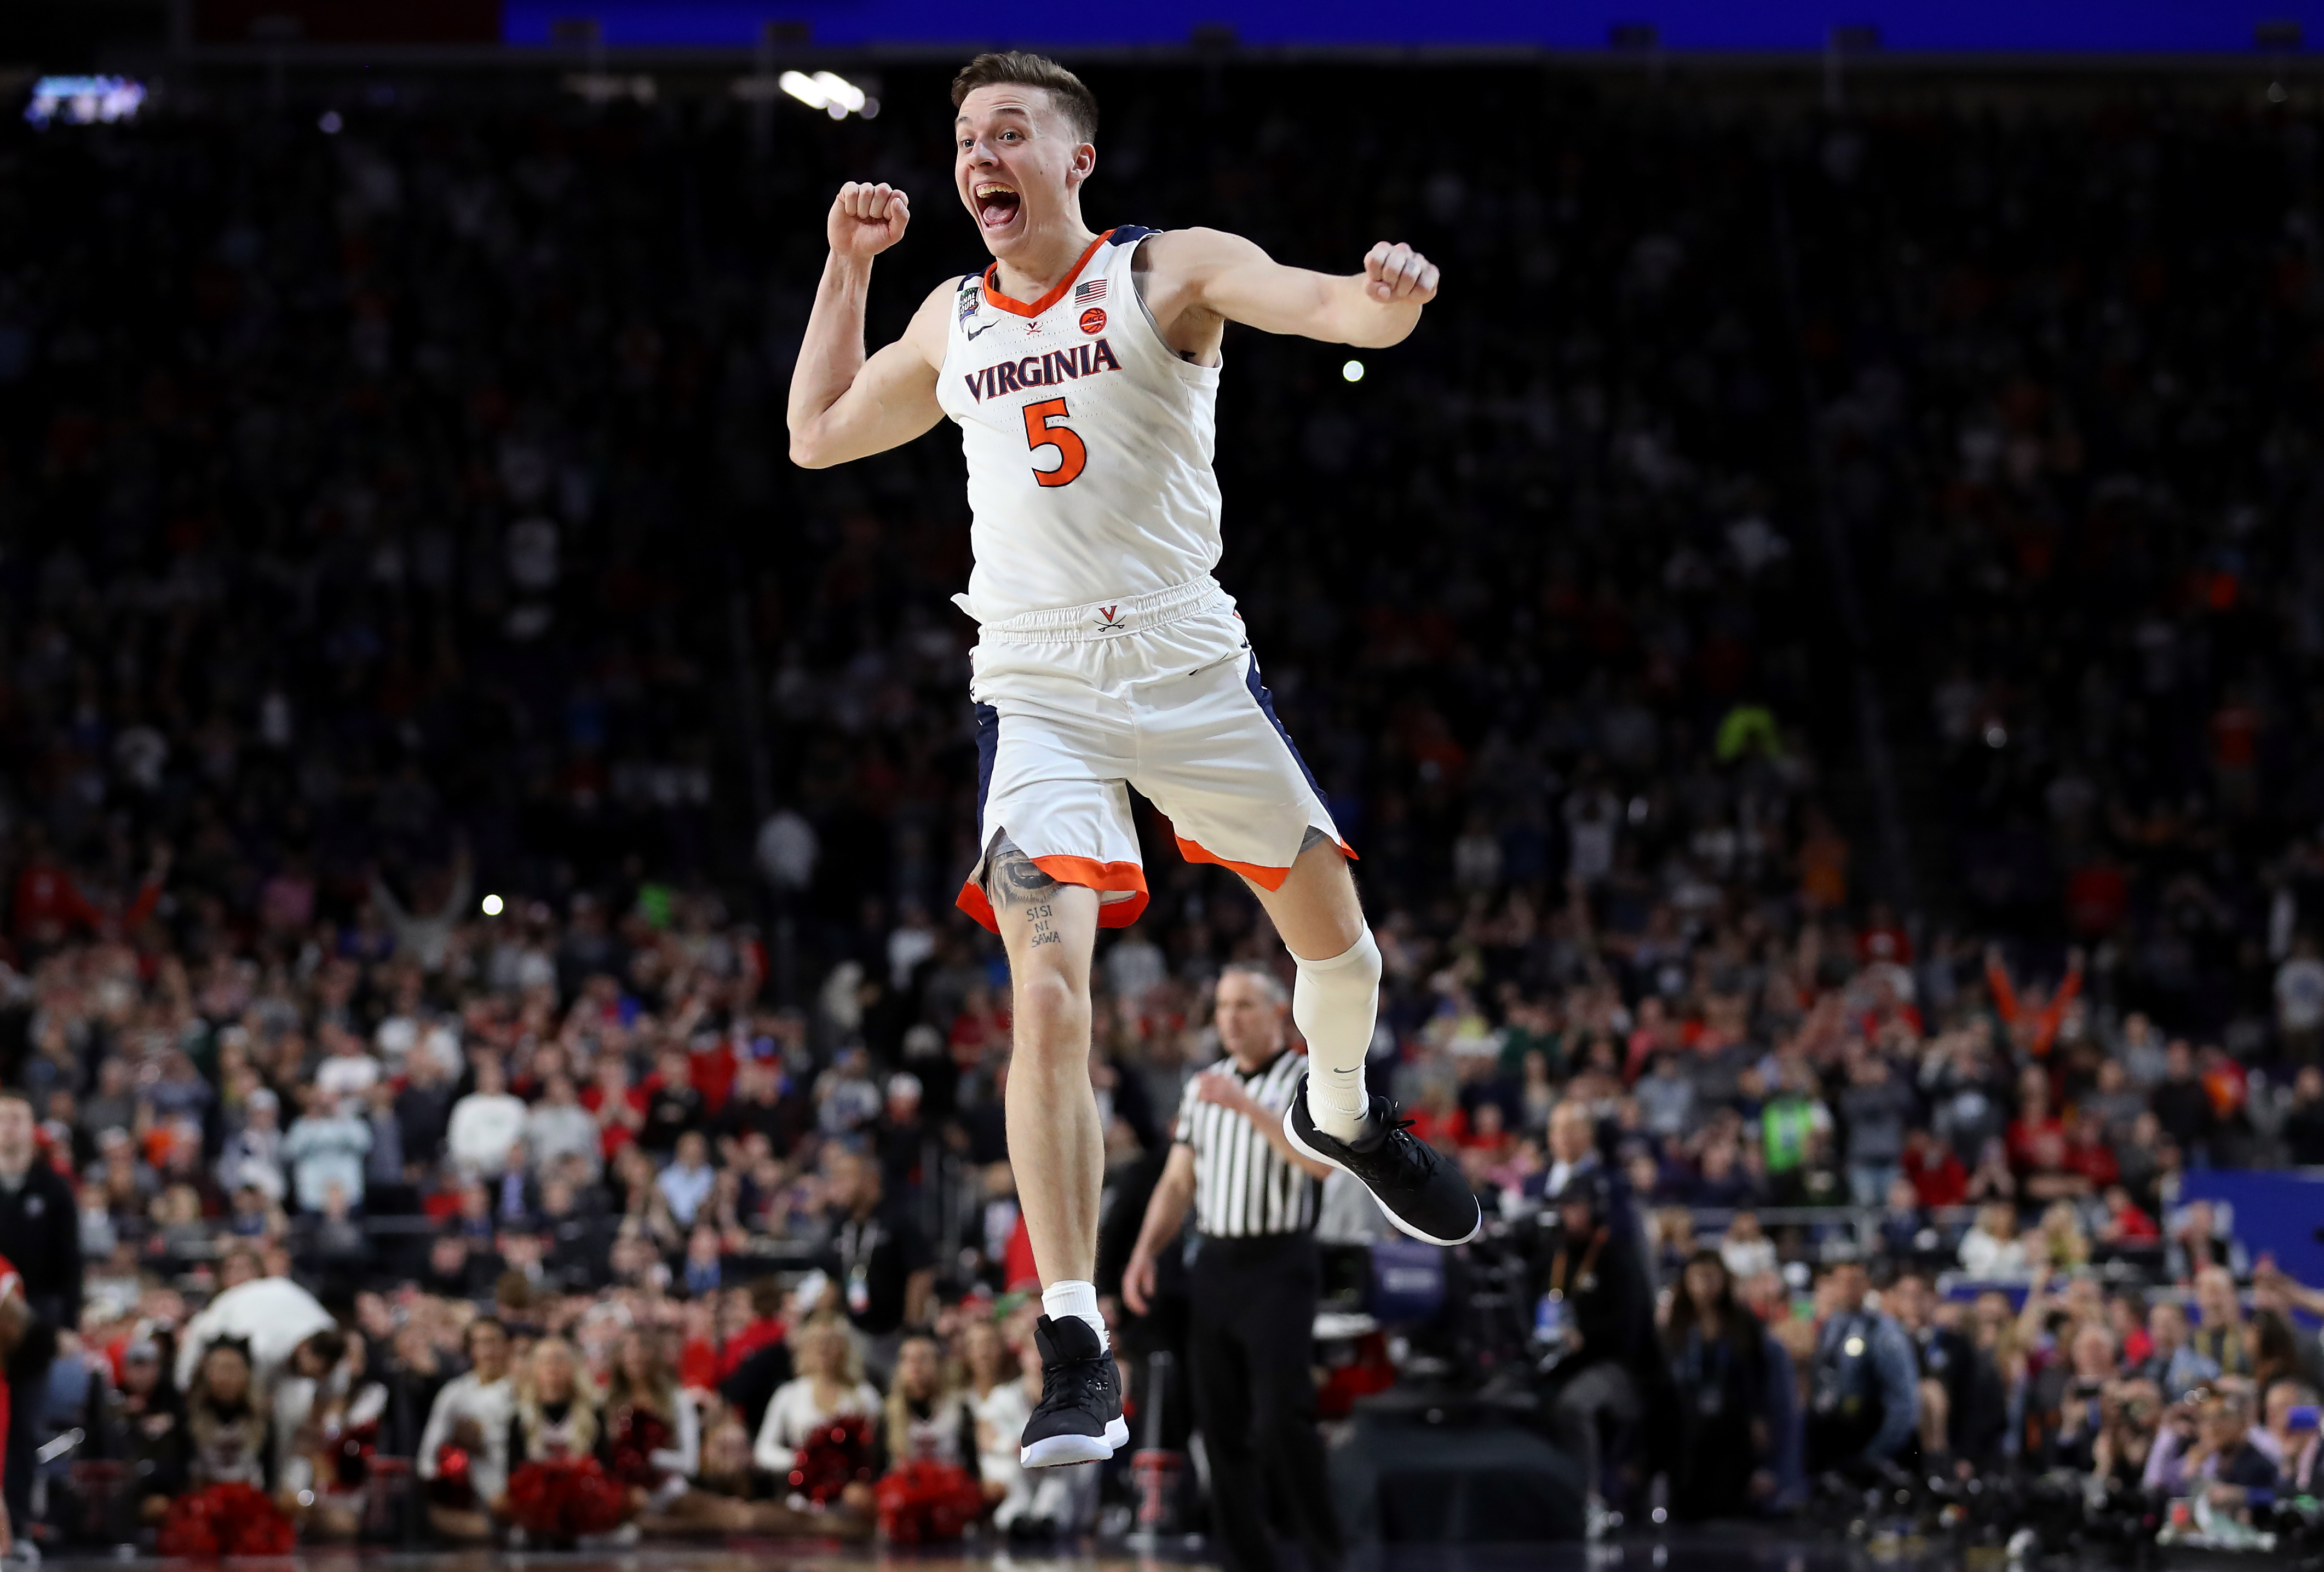 National Champs Virginia Cavaliers